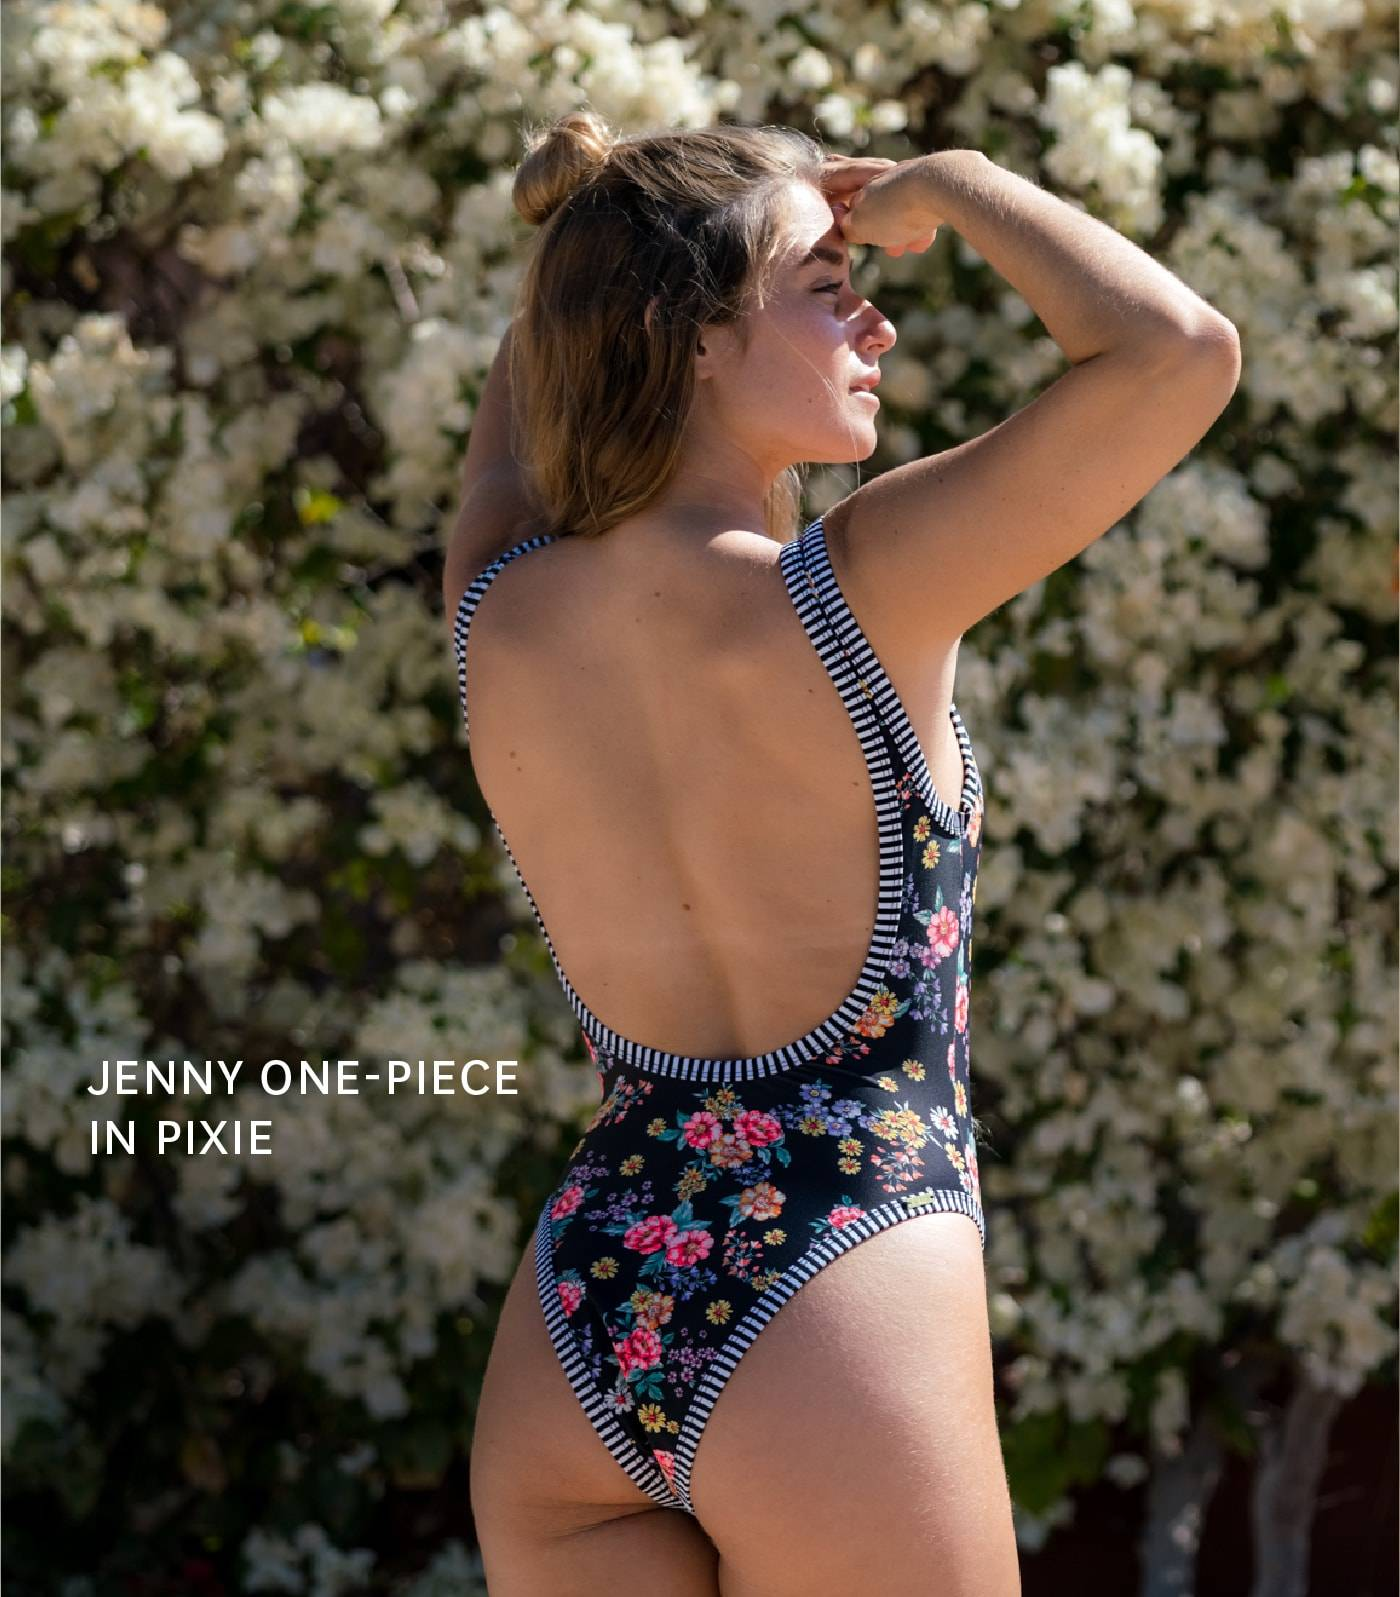 Get the JENNY ONE-PIECE in PIXIE!